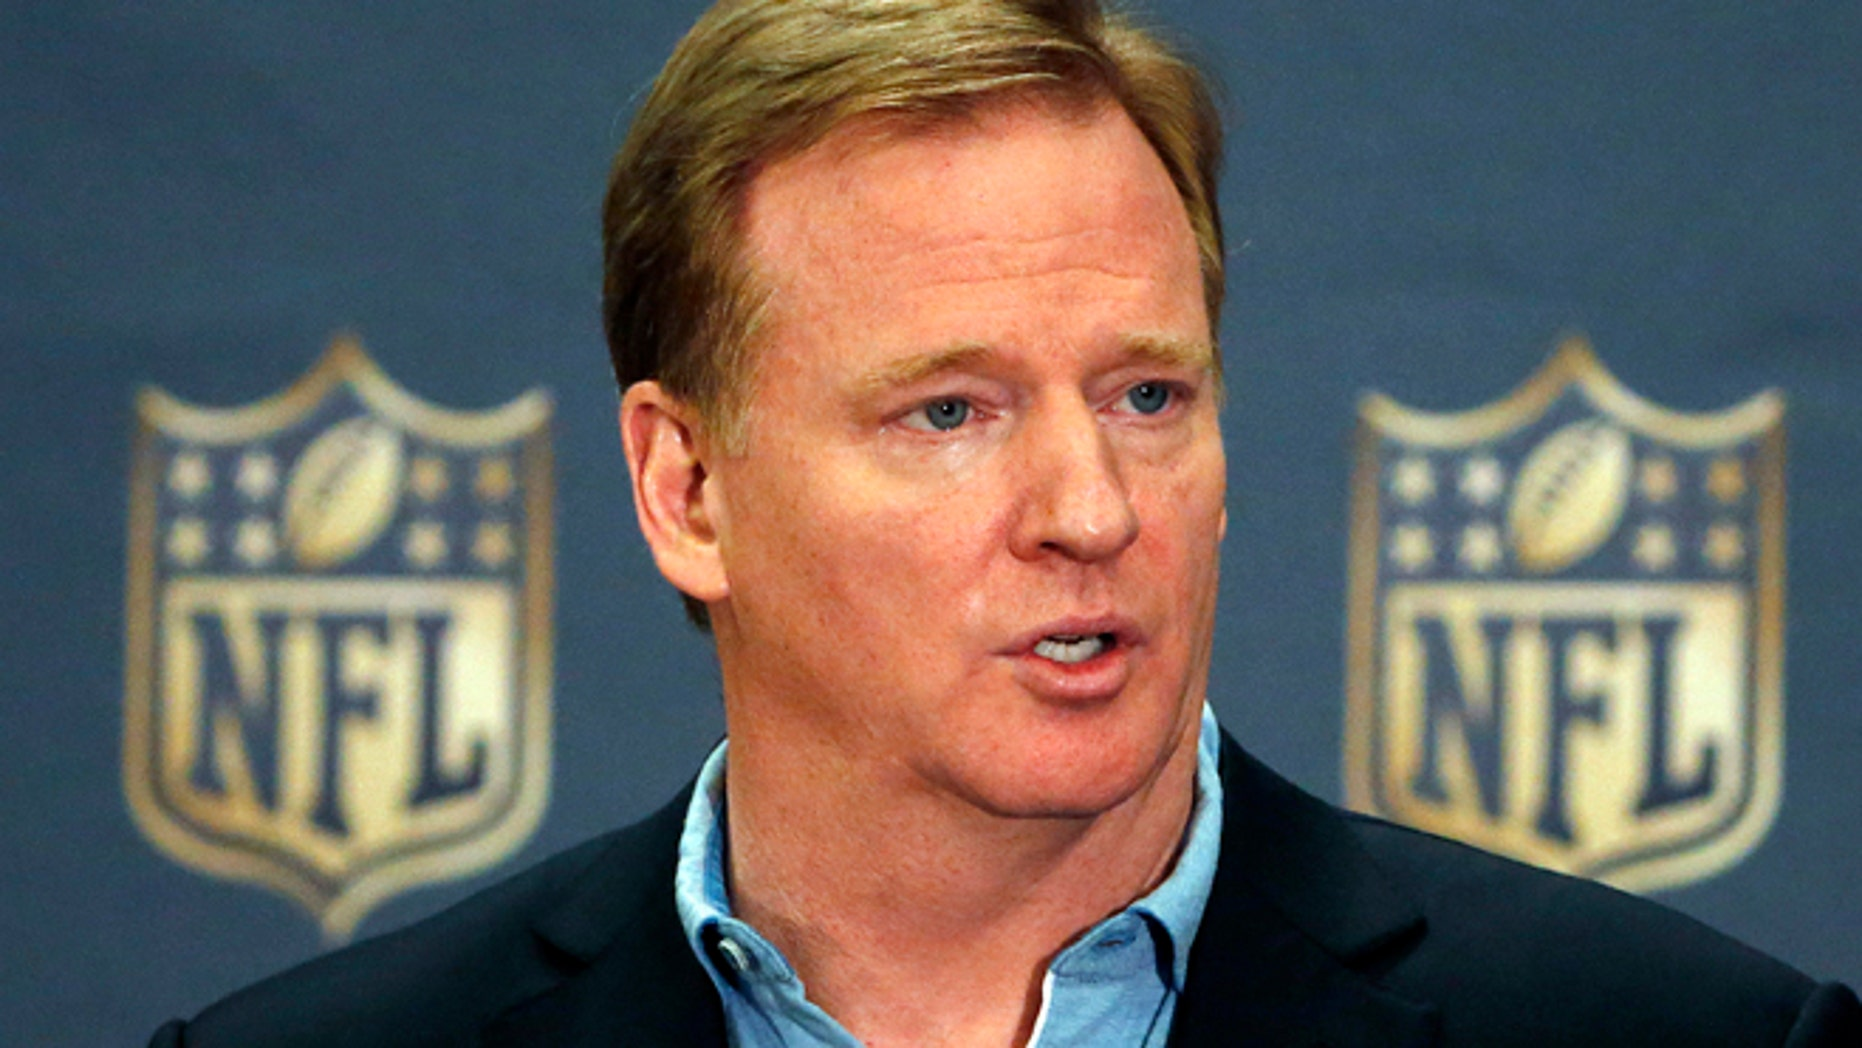 March 25, 2015: NFL Commissioner Roger Goodell addresses the media at a news conference at the NFL Annual Meeting in Phoenix.